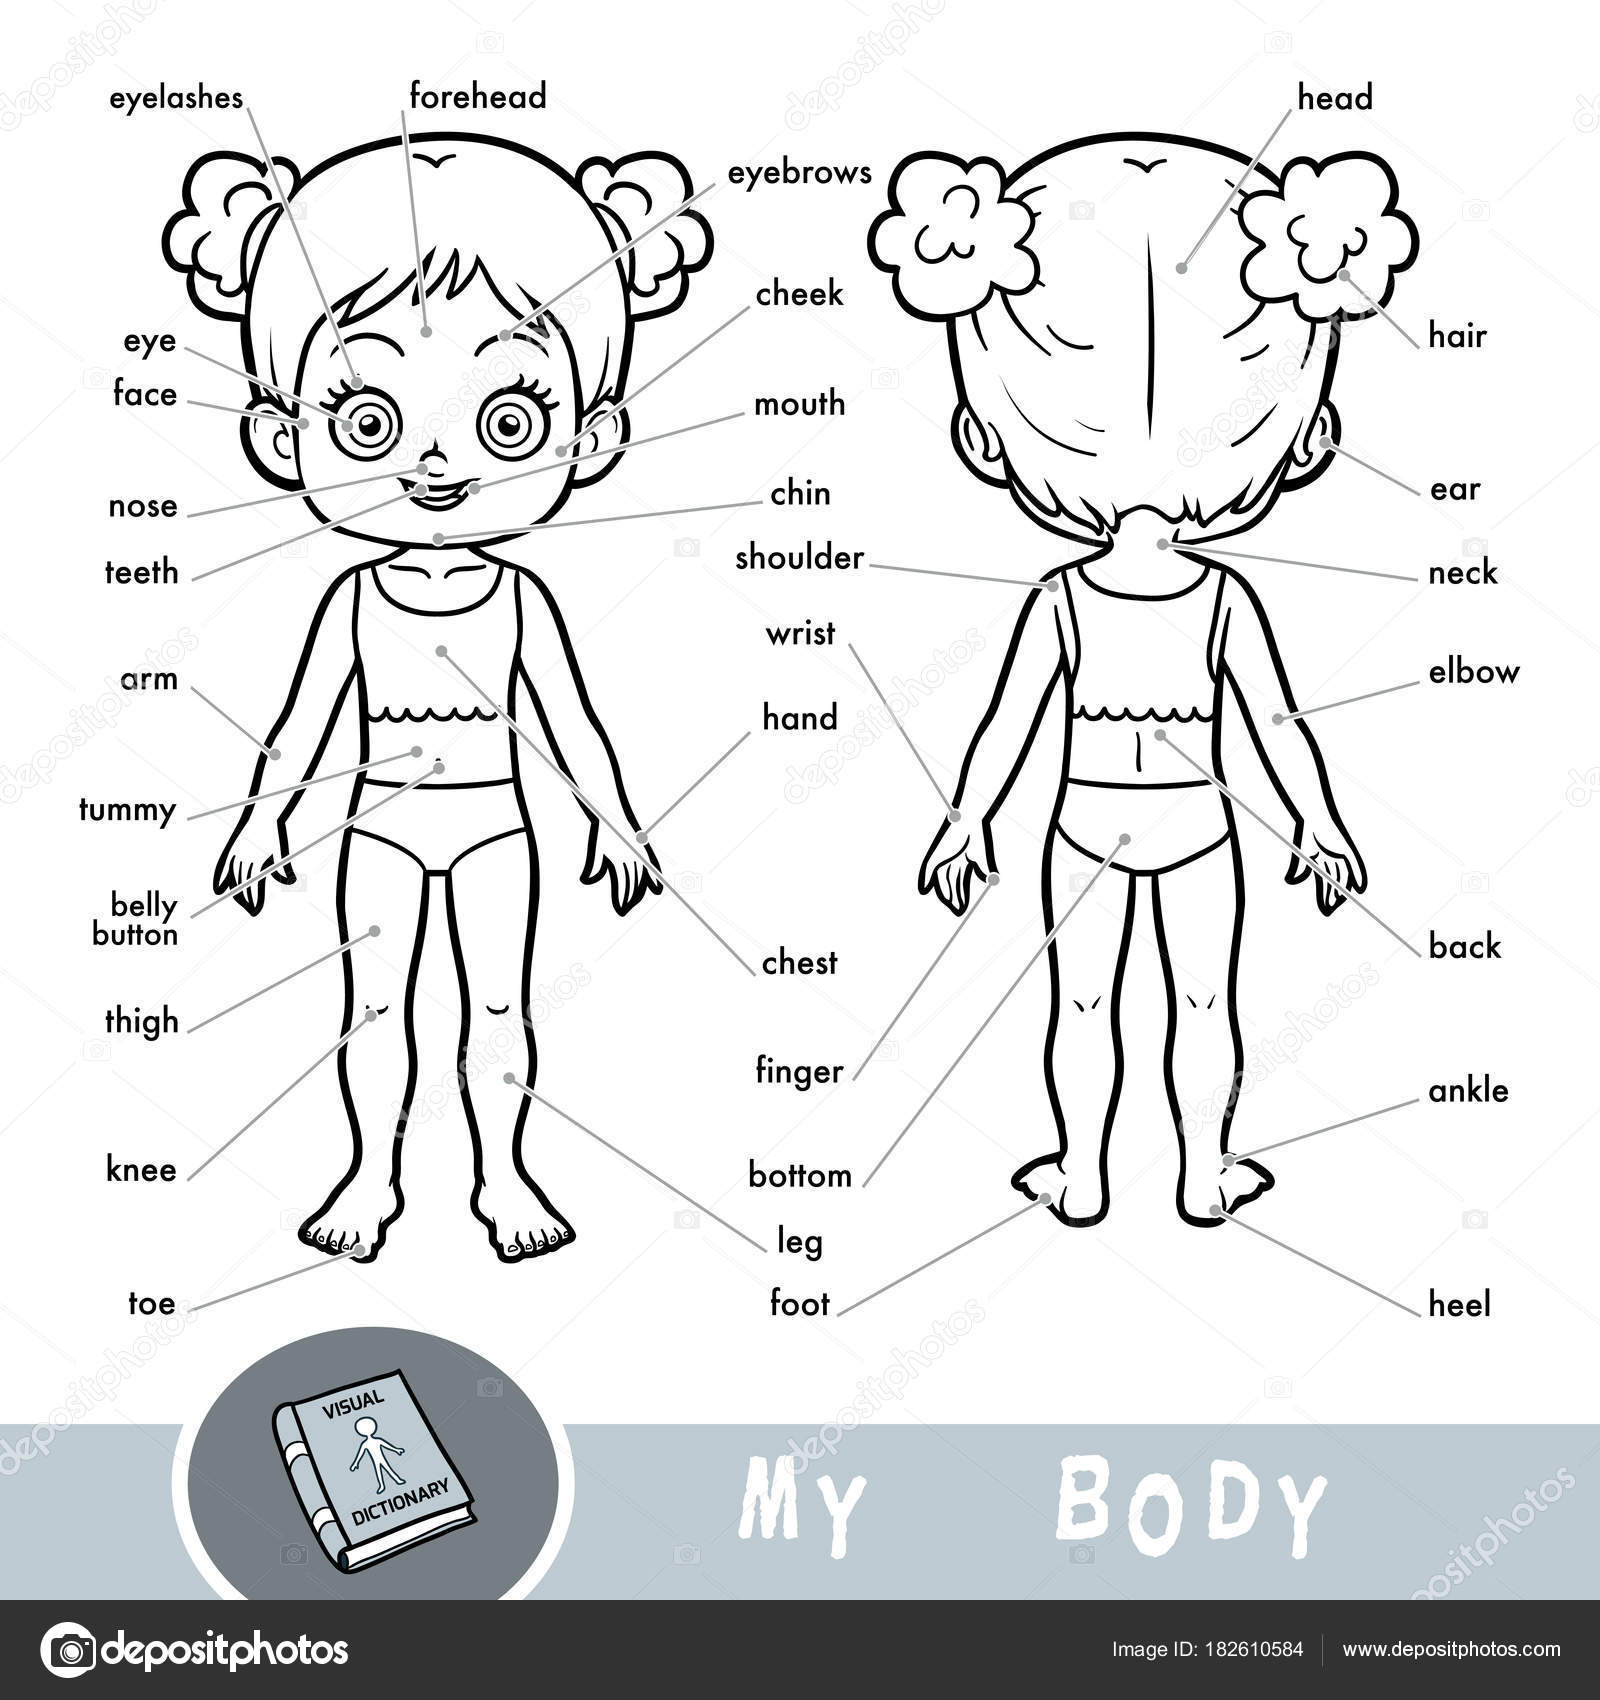 Visual Dictionary For Children About The Human Body My Body